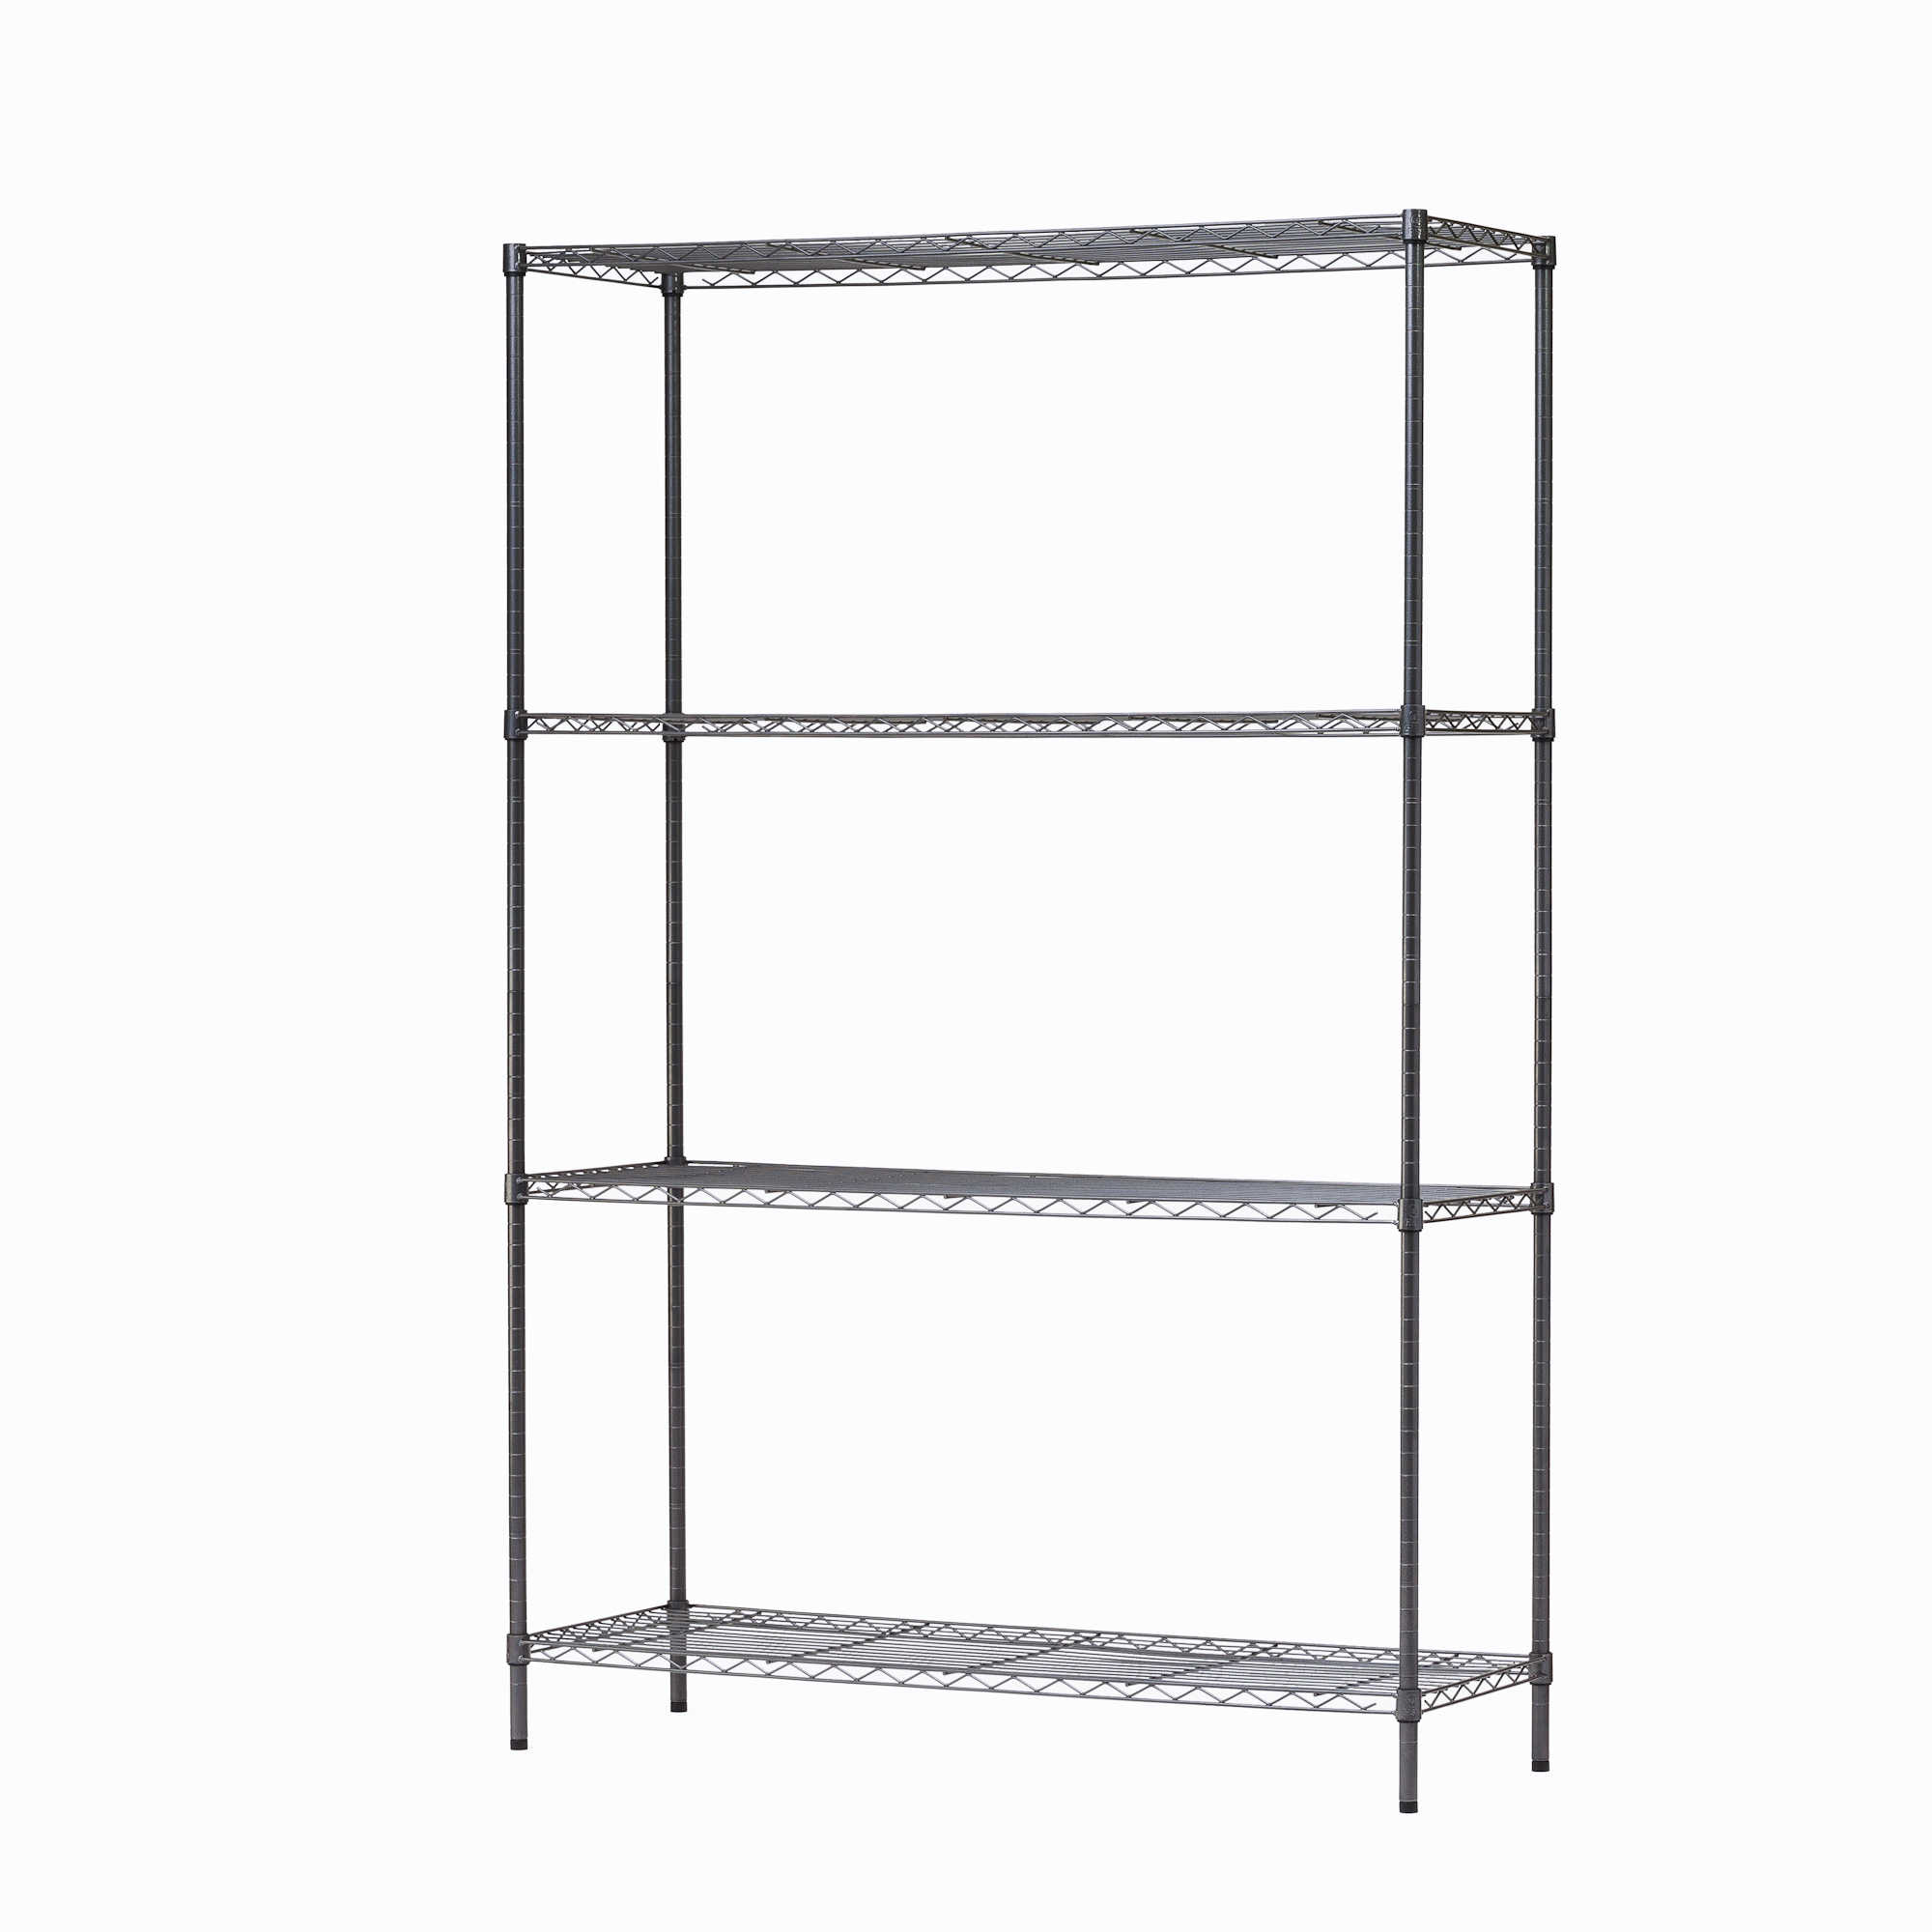 HSS 4 Tier Wire Shelving Rack, Black Anthracite, 18'Dx48'Wx72'H